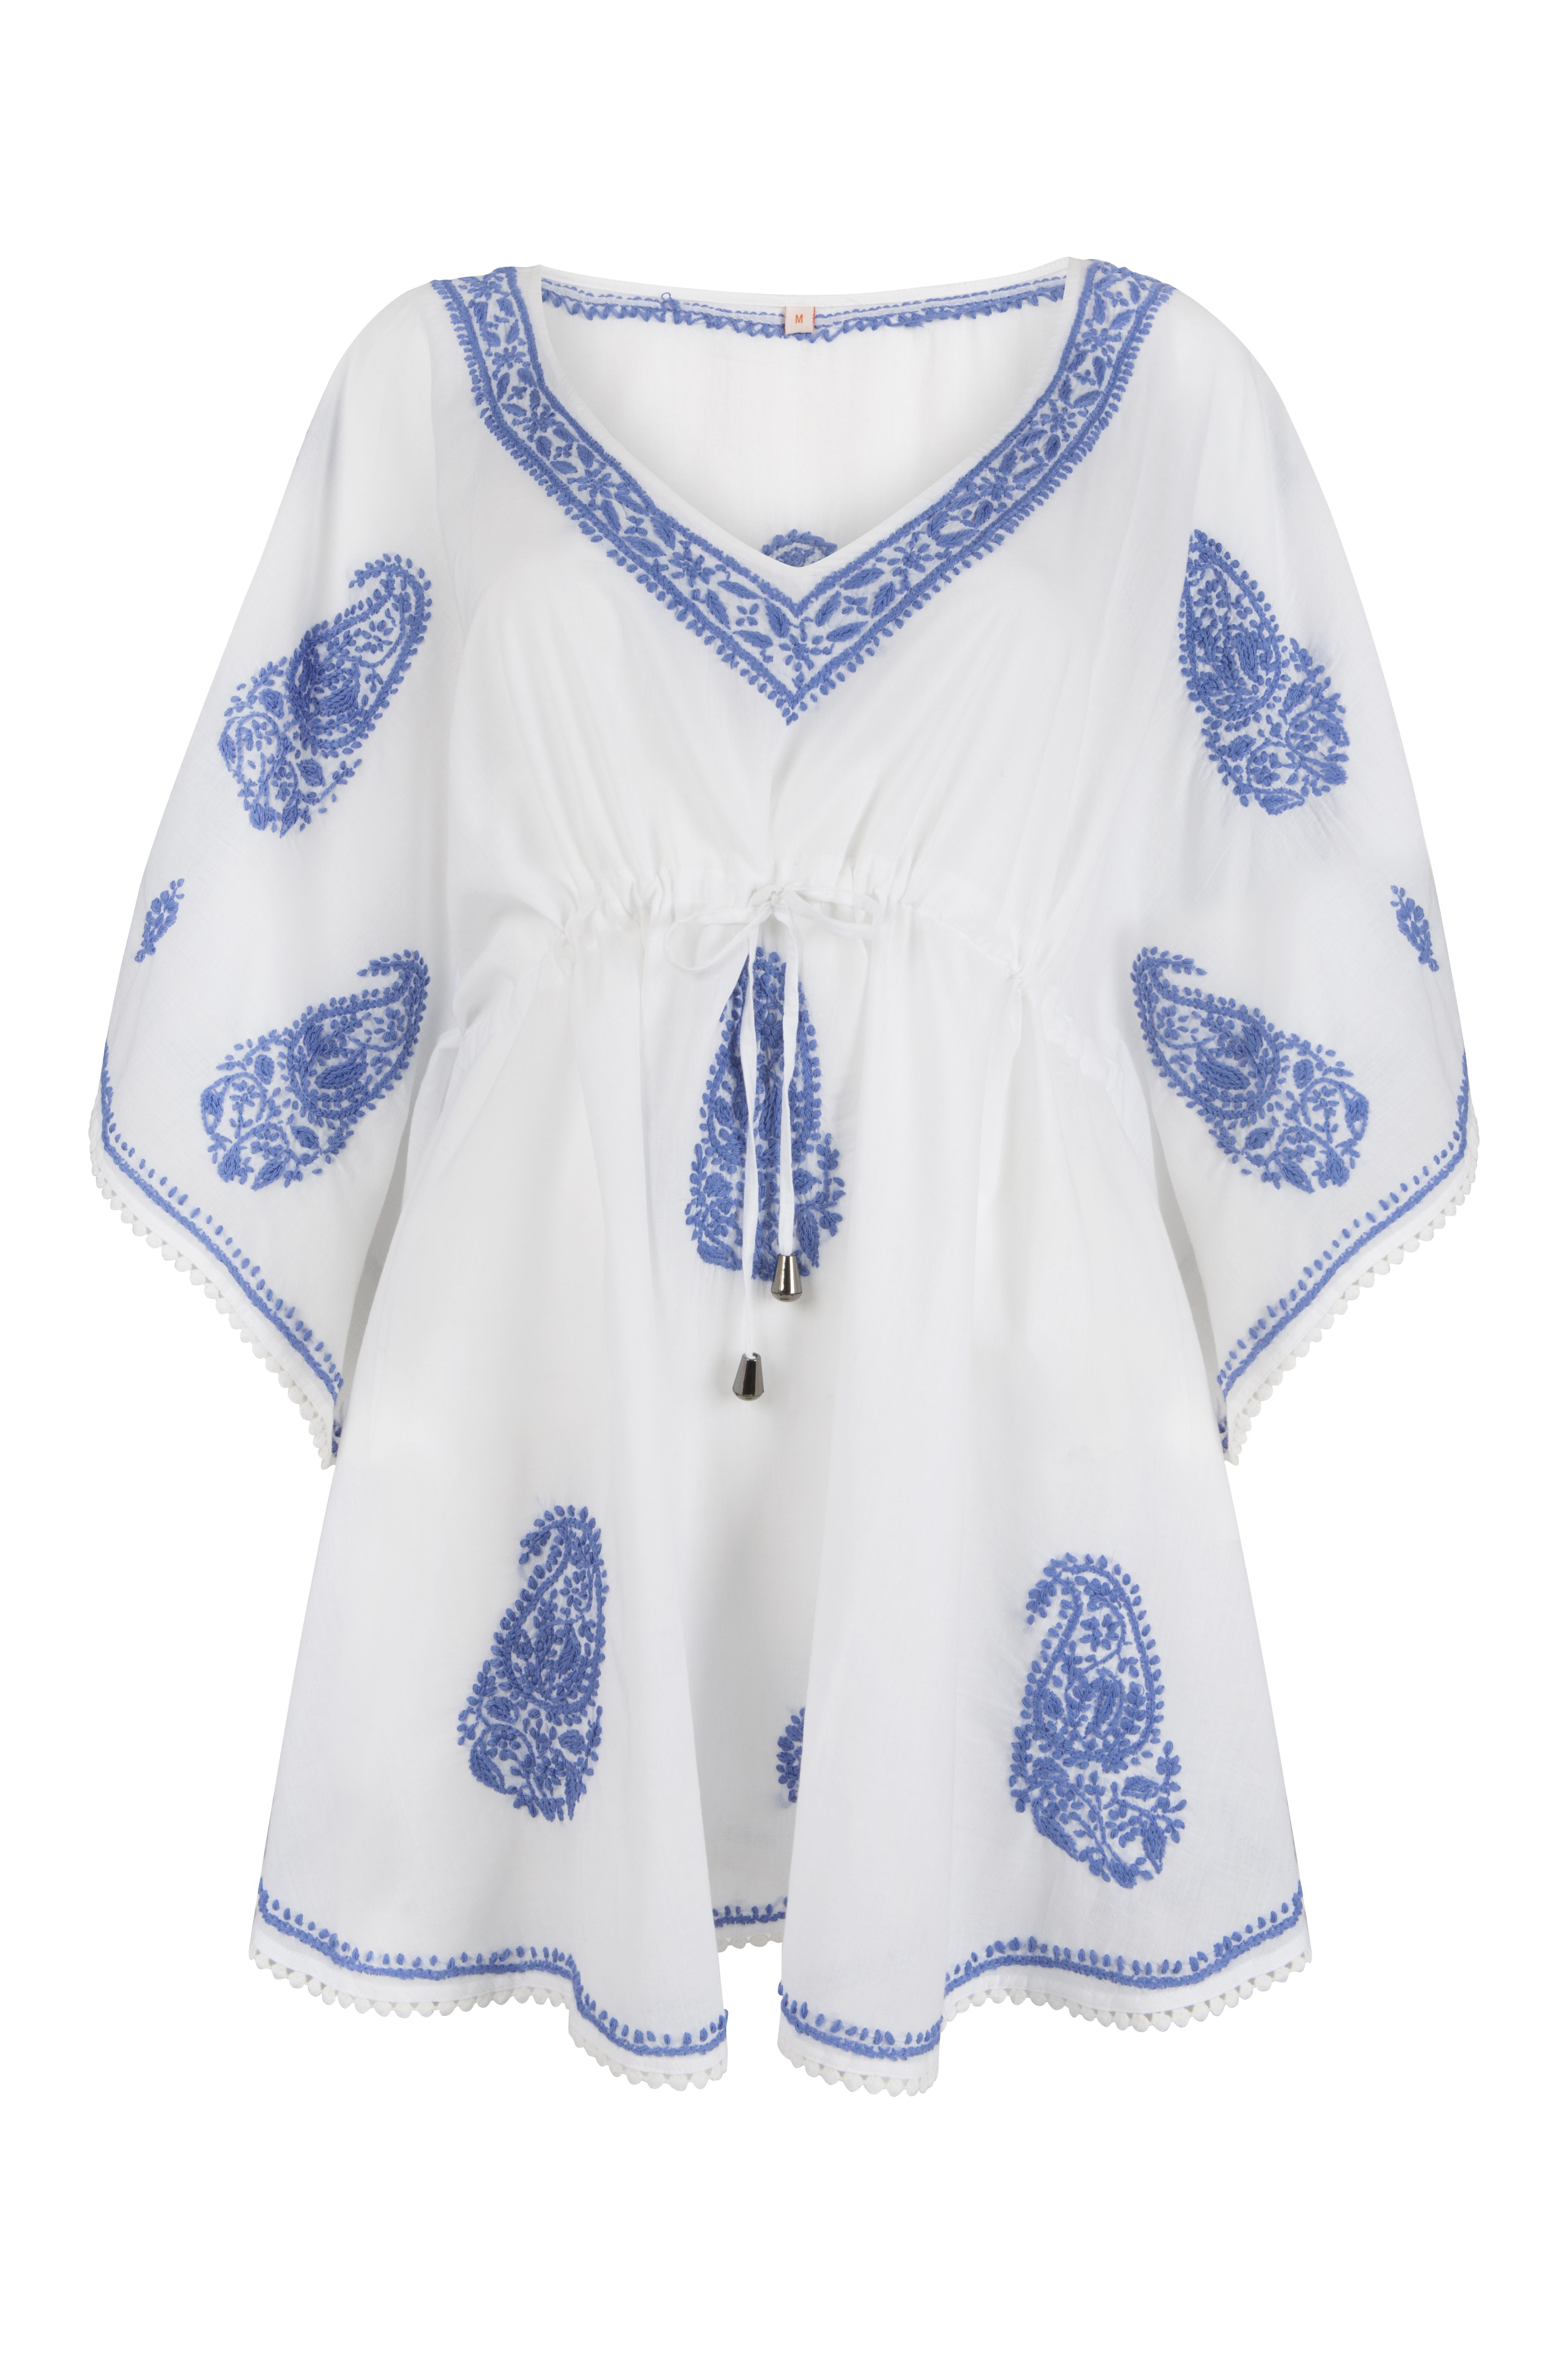 Claudia Kaftan from Beachcover.com